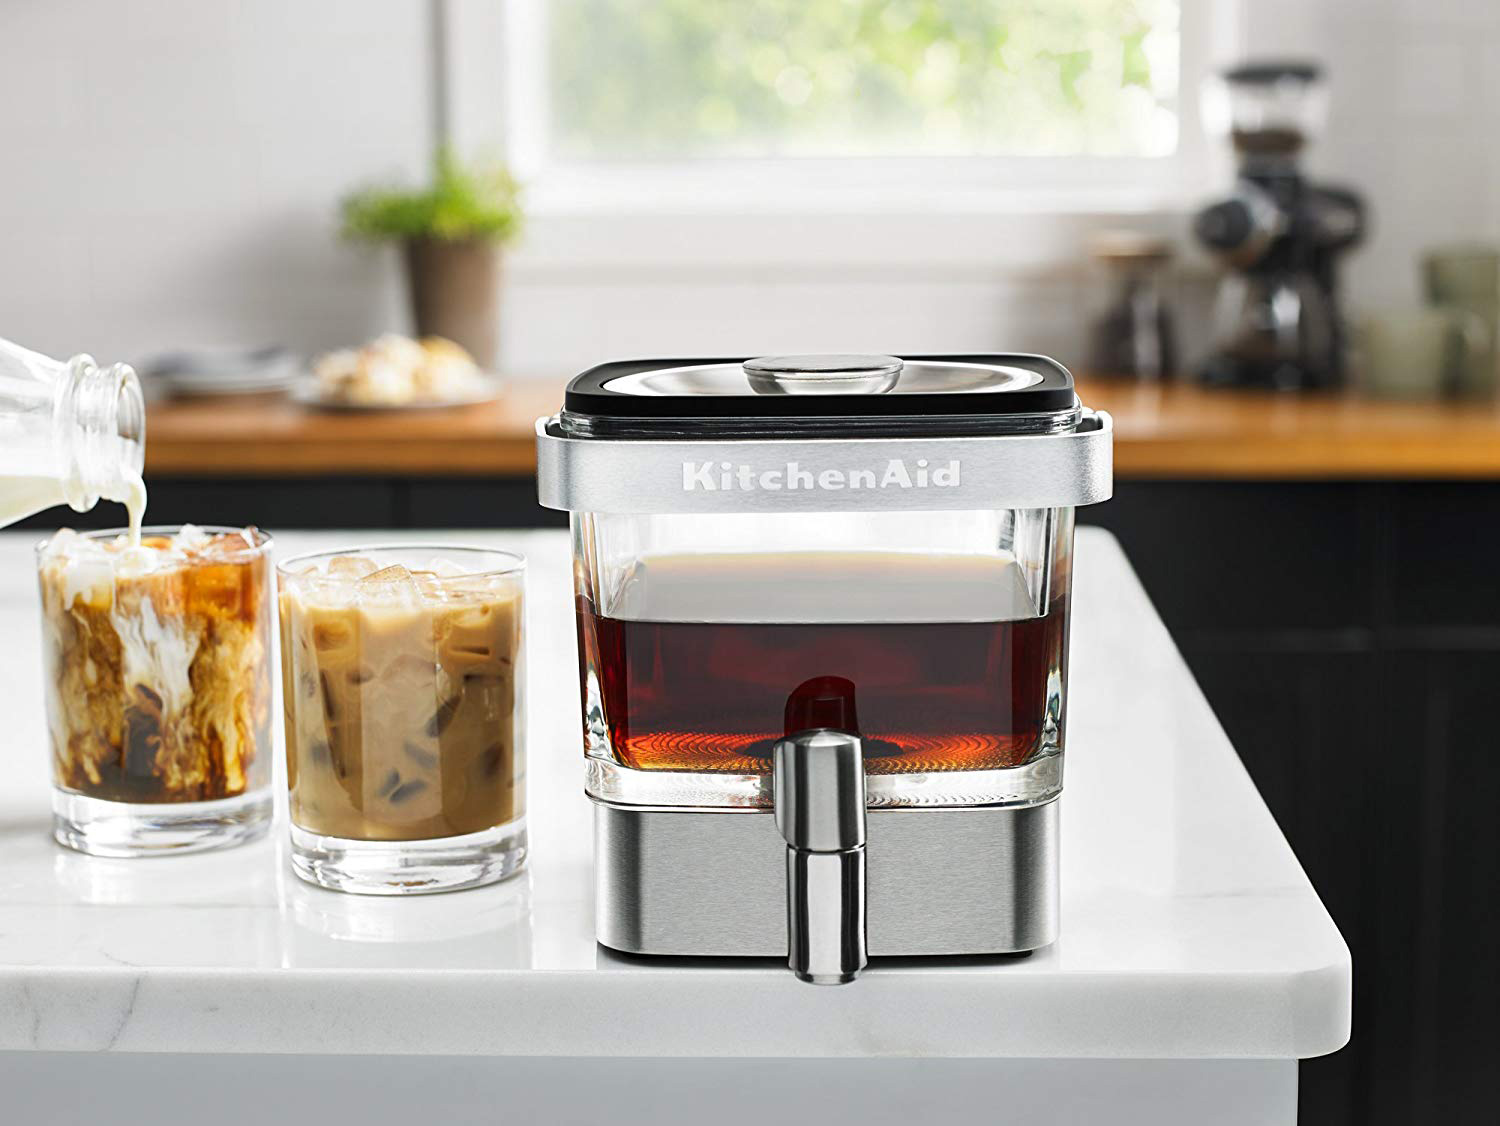 KitchenAid's Best-Selling Cold Brew Maker Is Just $70 for Prime Day — Today Only!